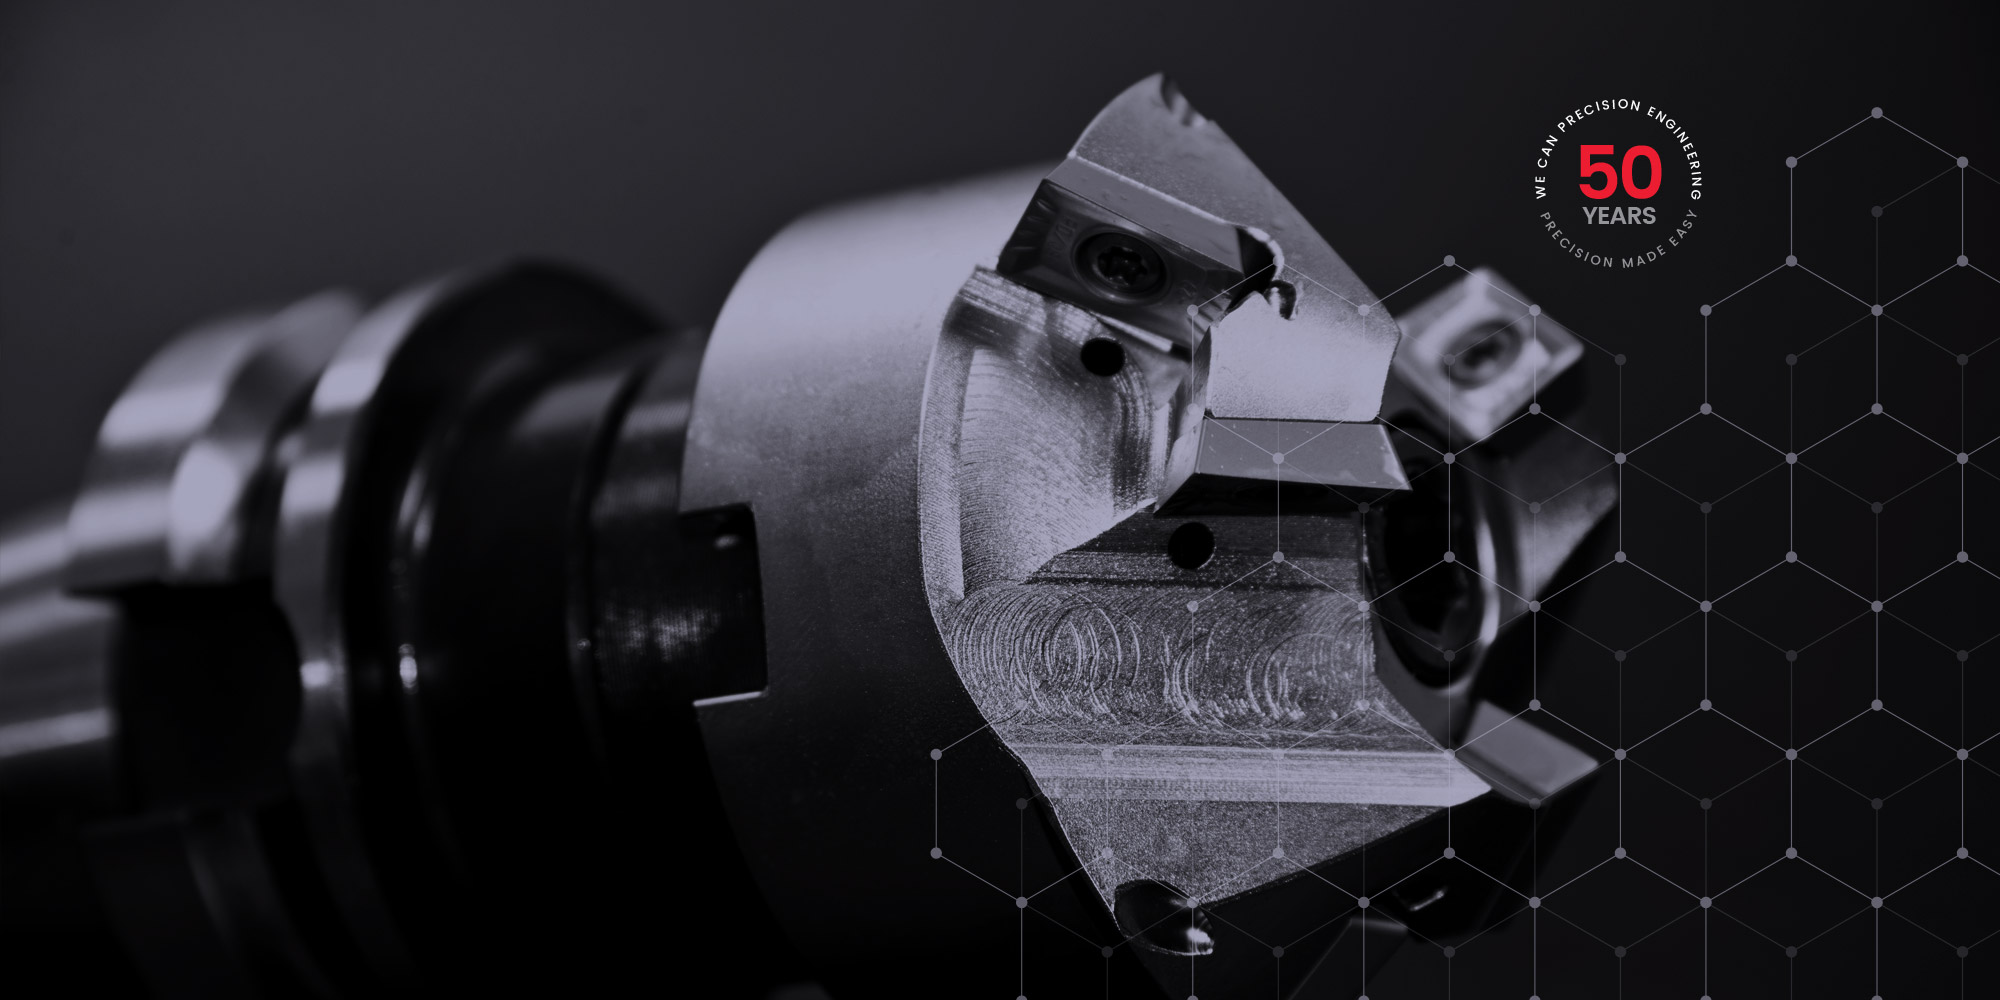 Design, repair, replace and make critical spare parts.